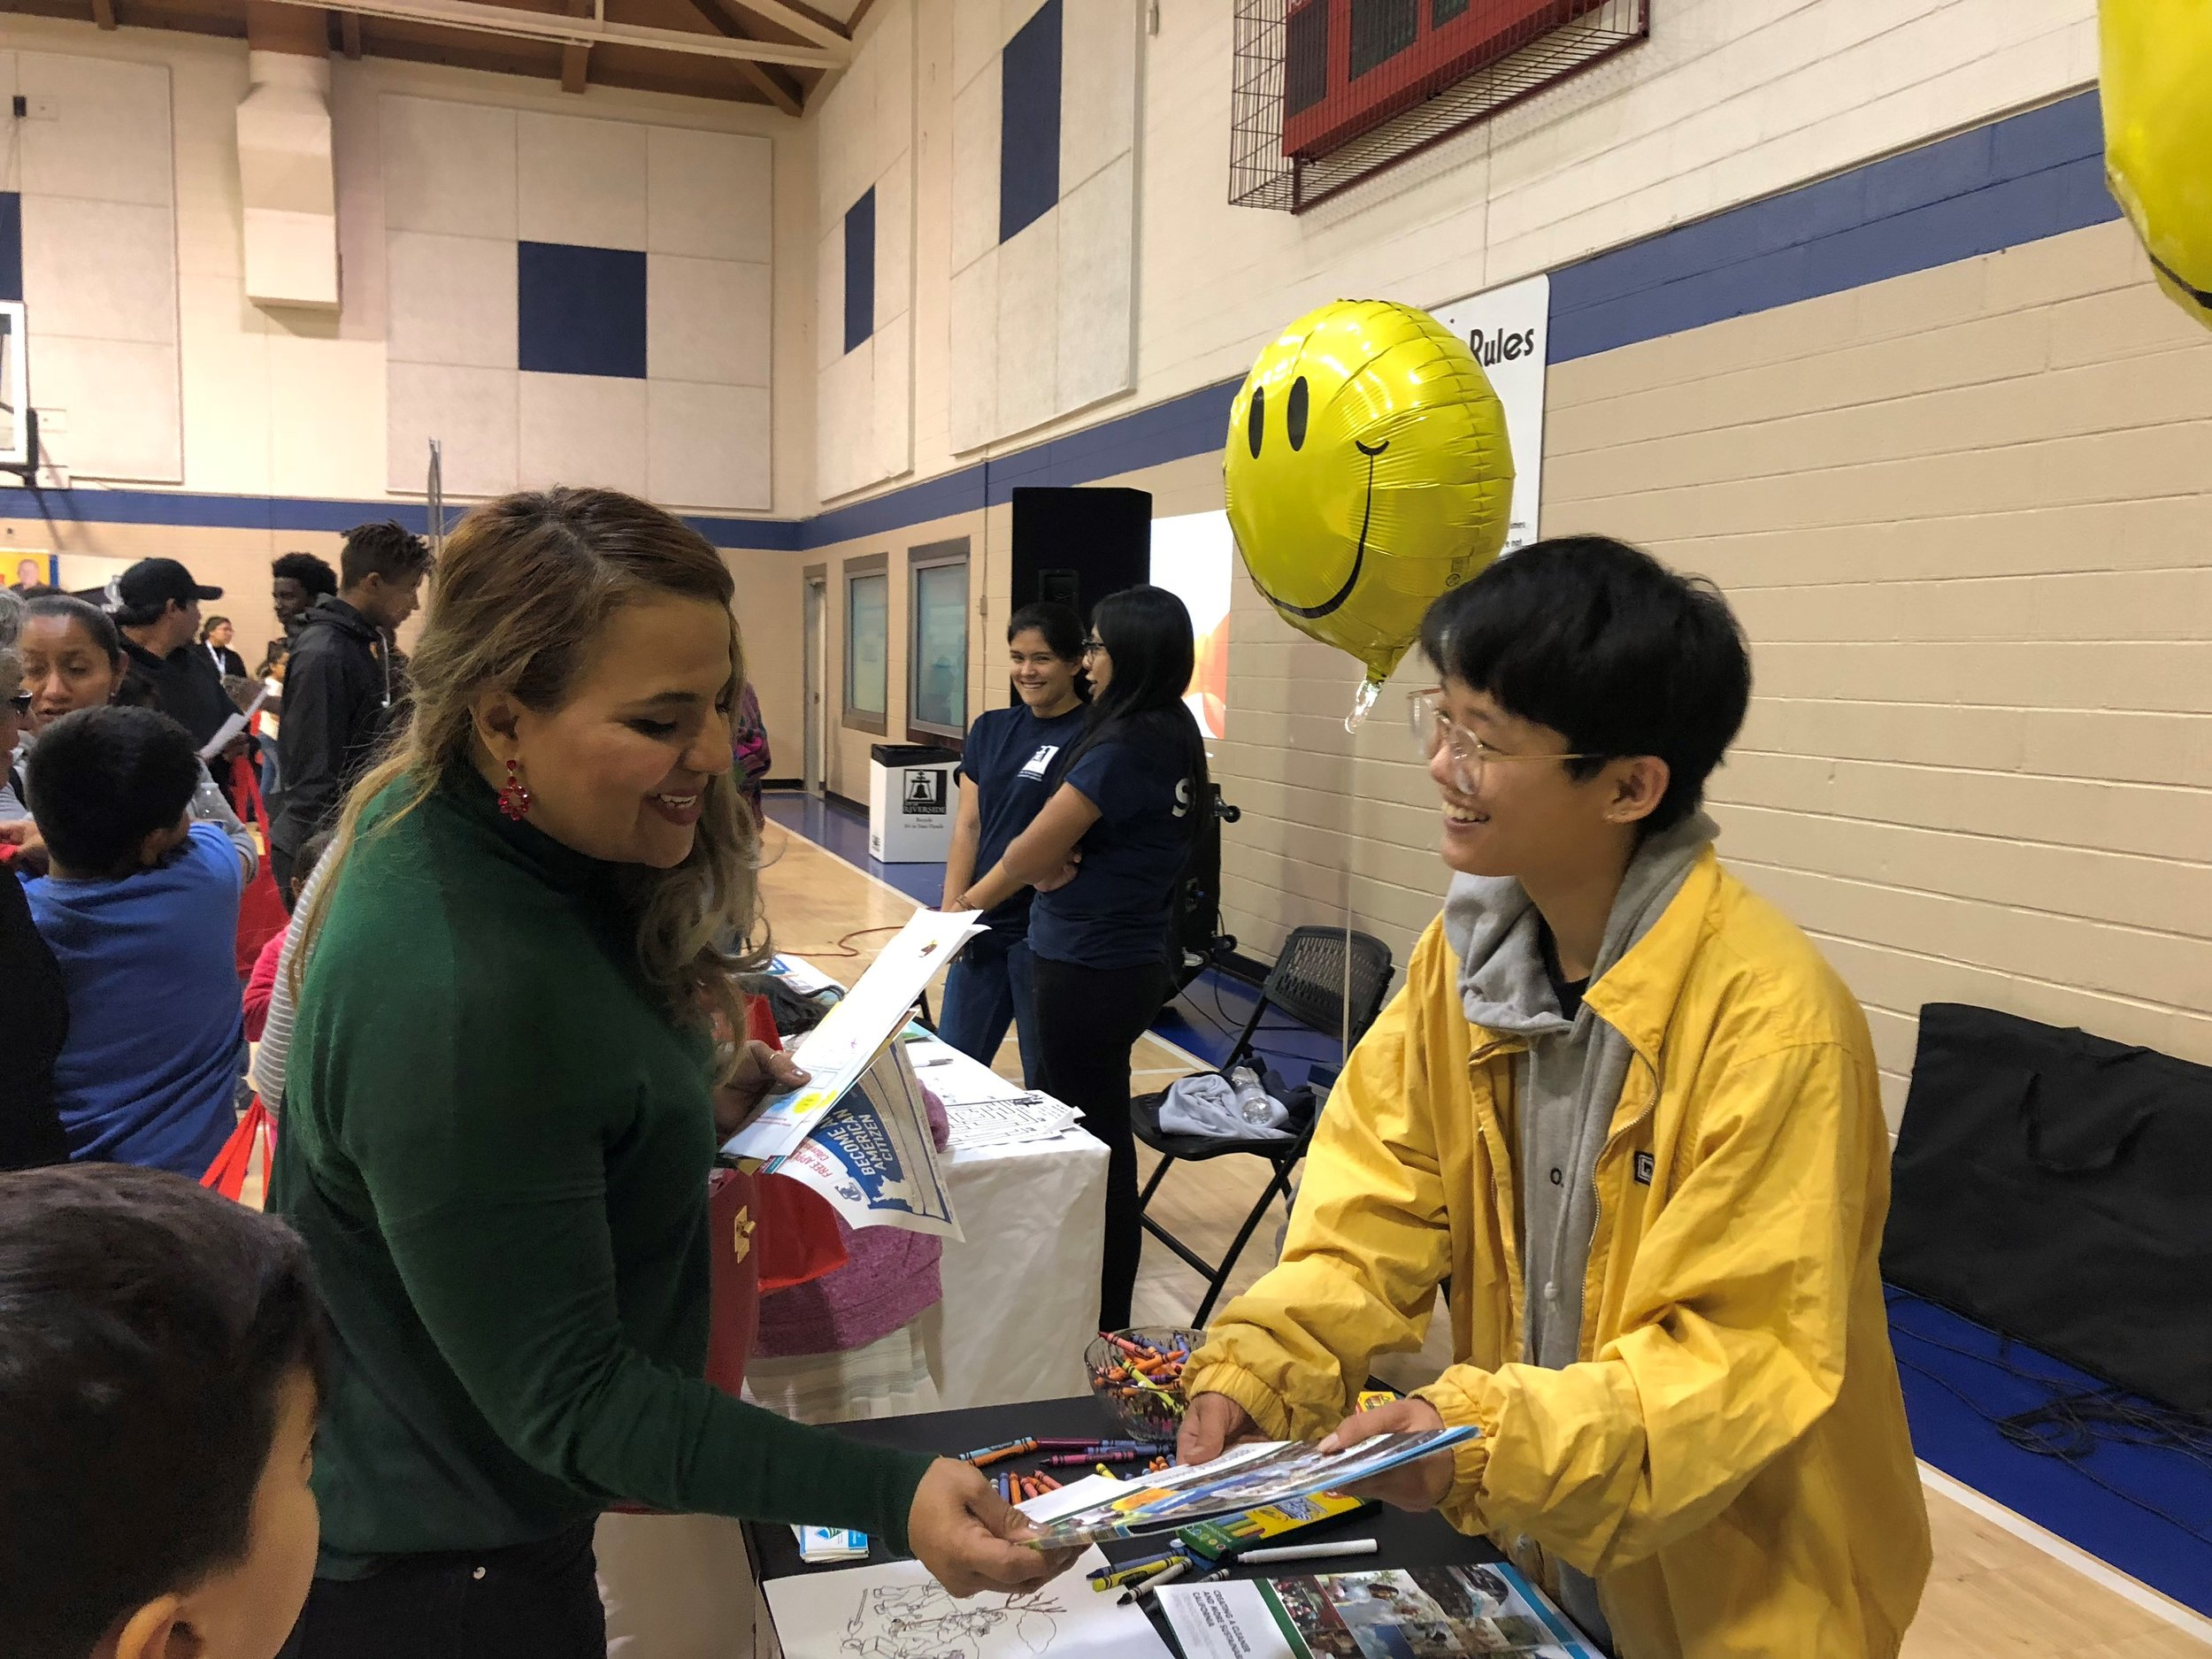 Student ambassador isabel shares information at an outreach table